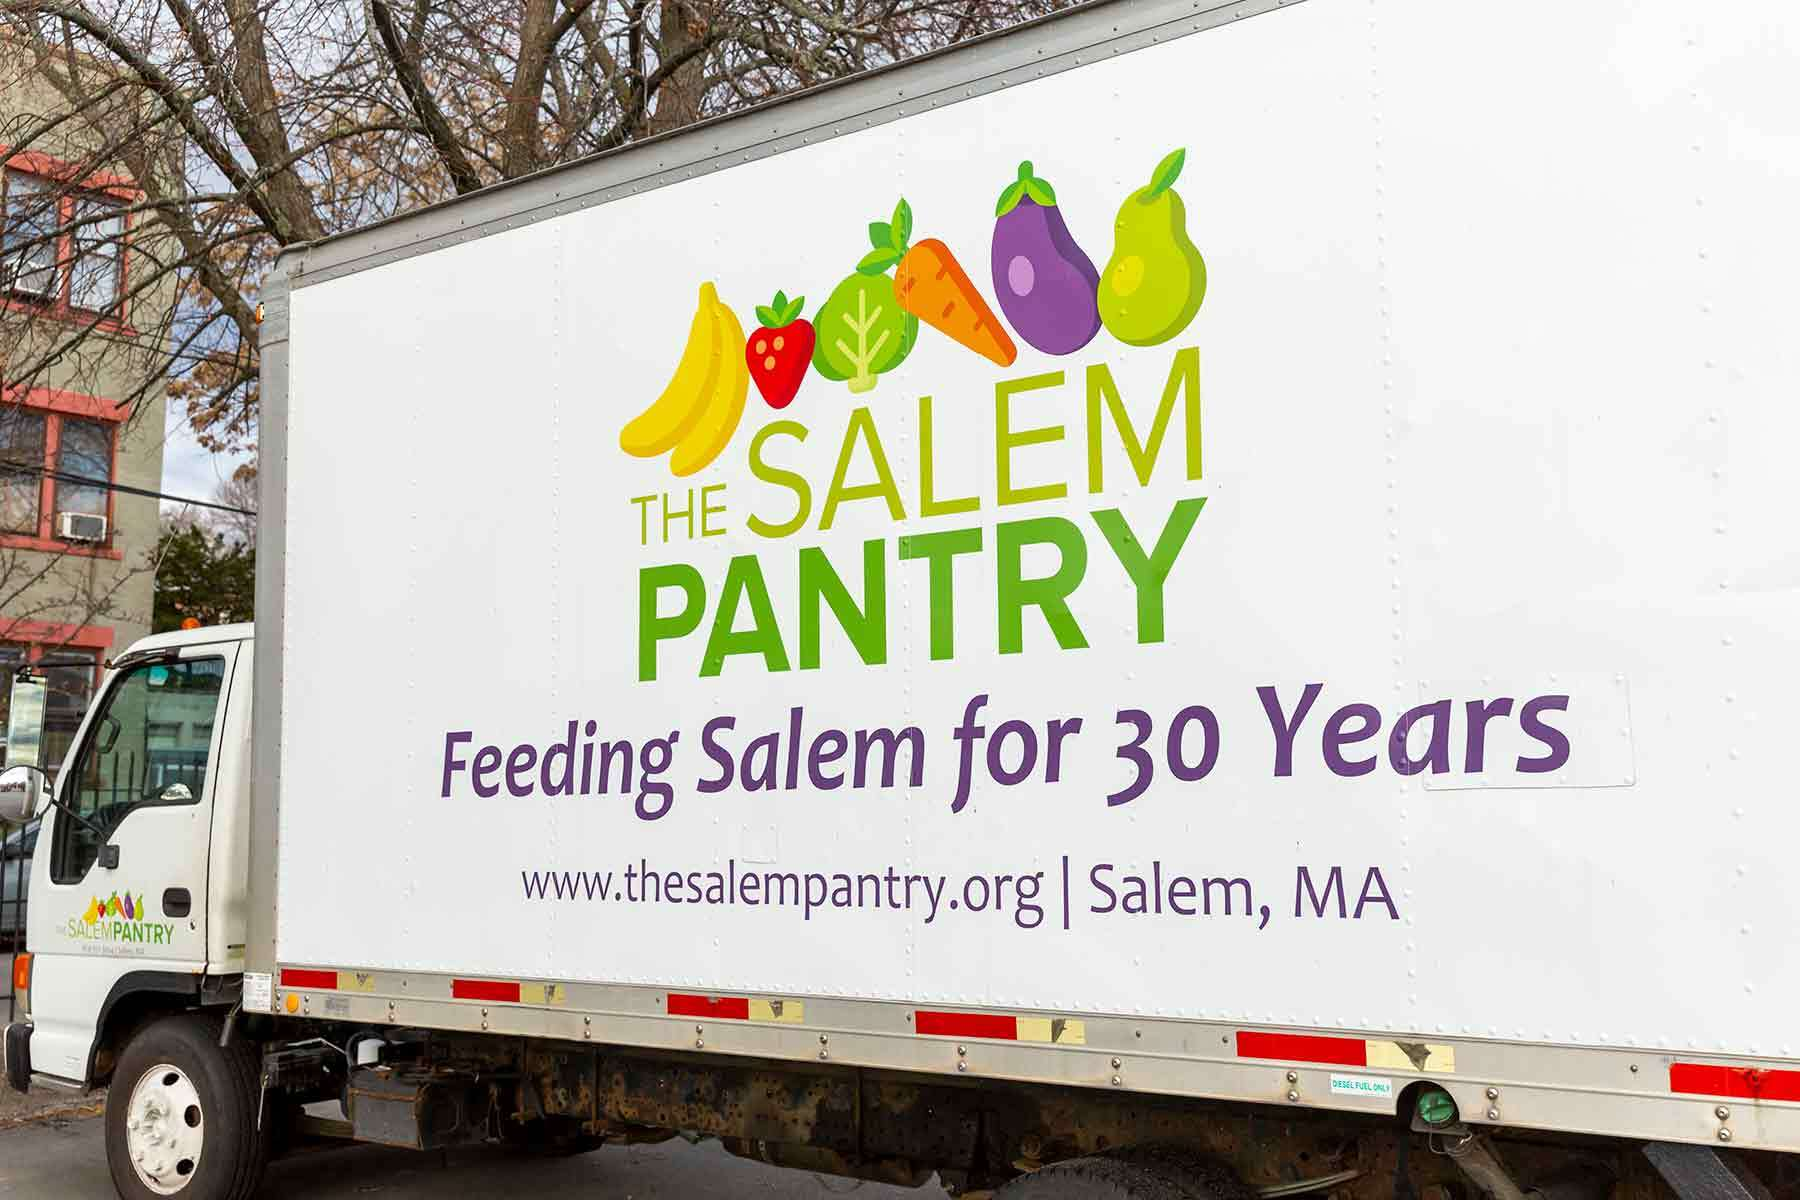 Side view of a white truck with the Salem Pantry logo on it.